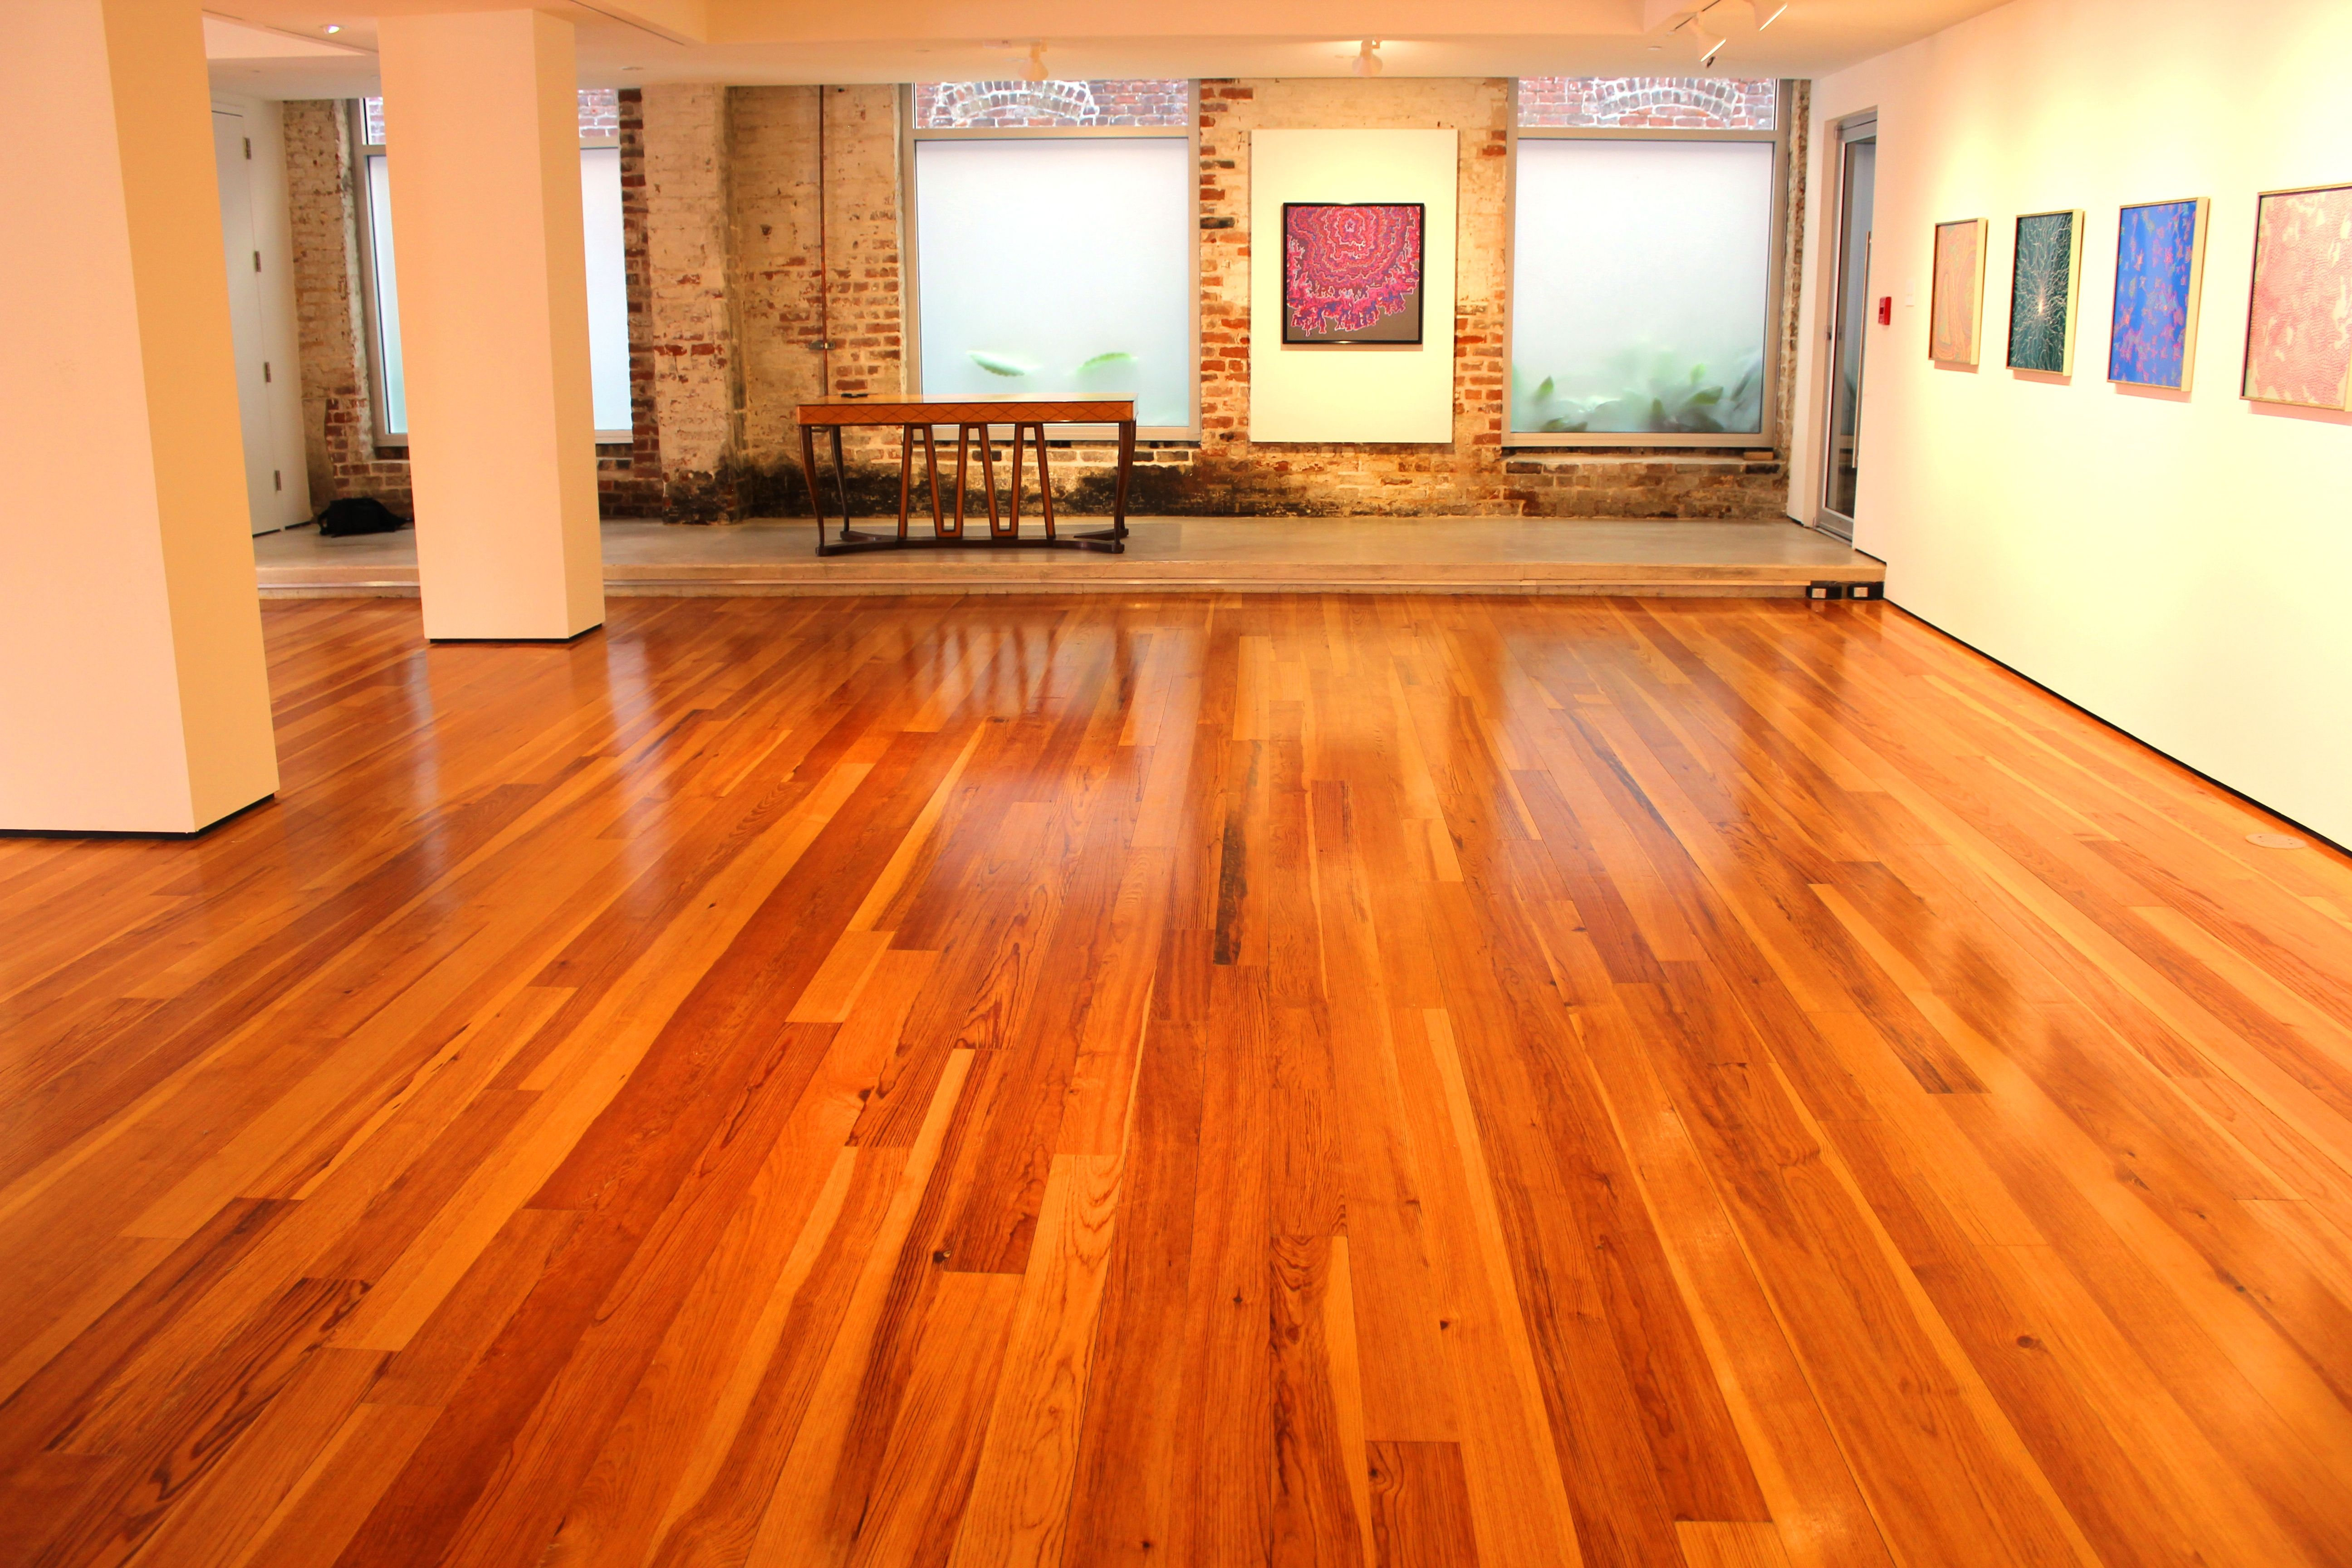 Caribbean Heart Pine Is A Beautiful Wood Prized Throughout The World For Its Distinctive Grain Rich Rous Patina And Durable Hardness